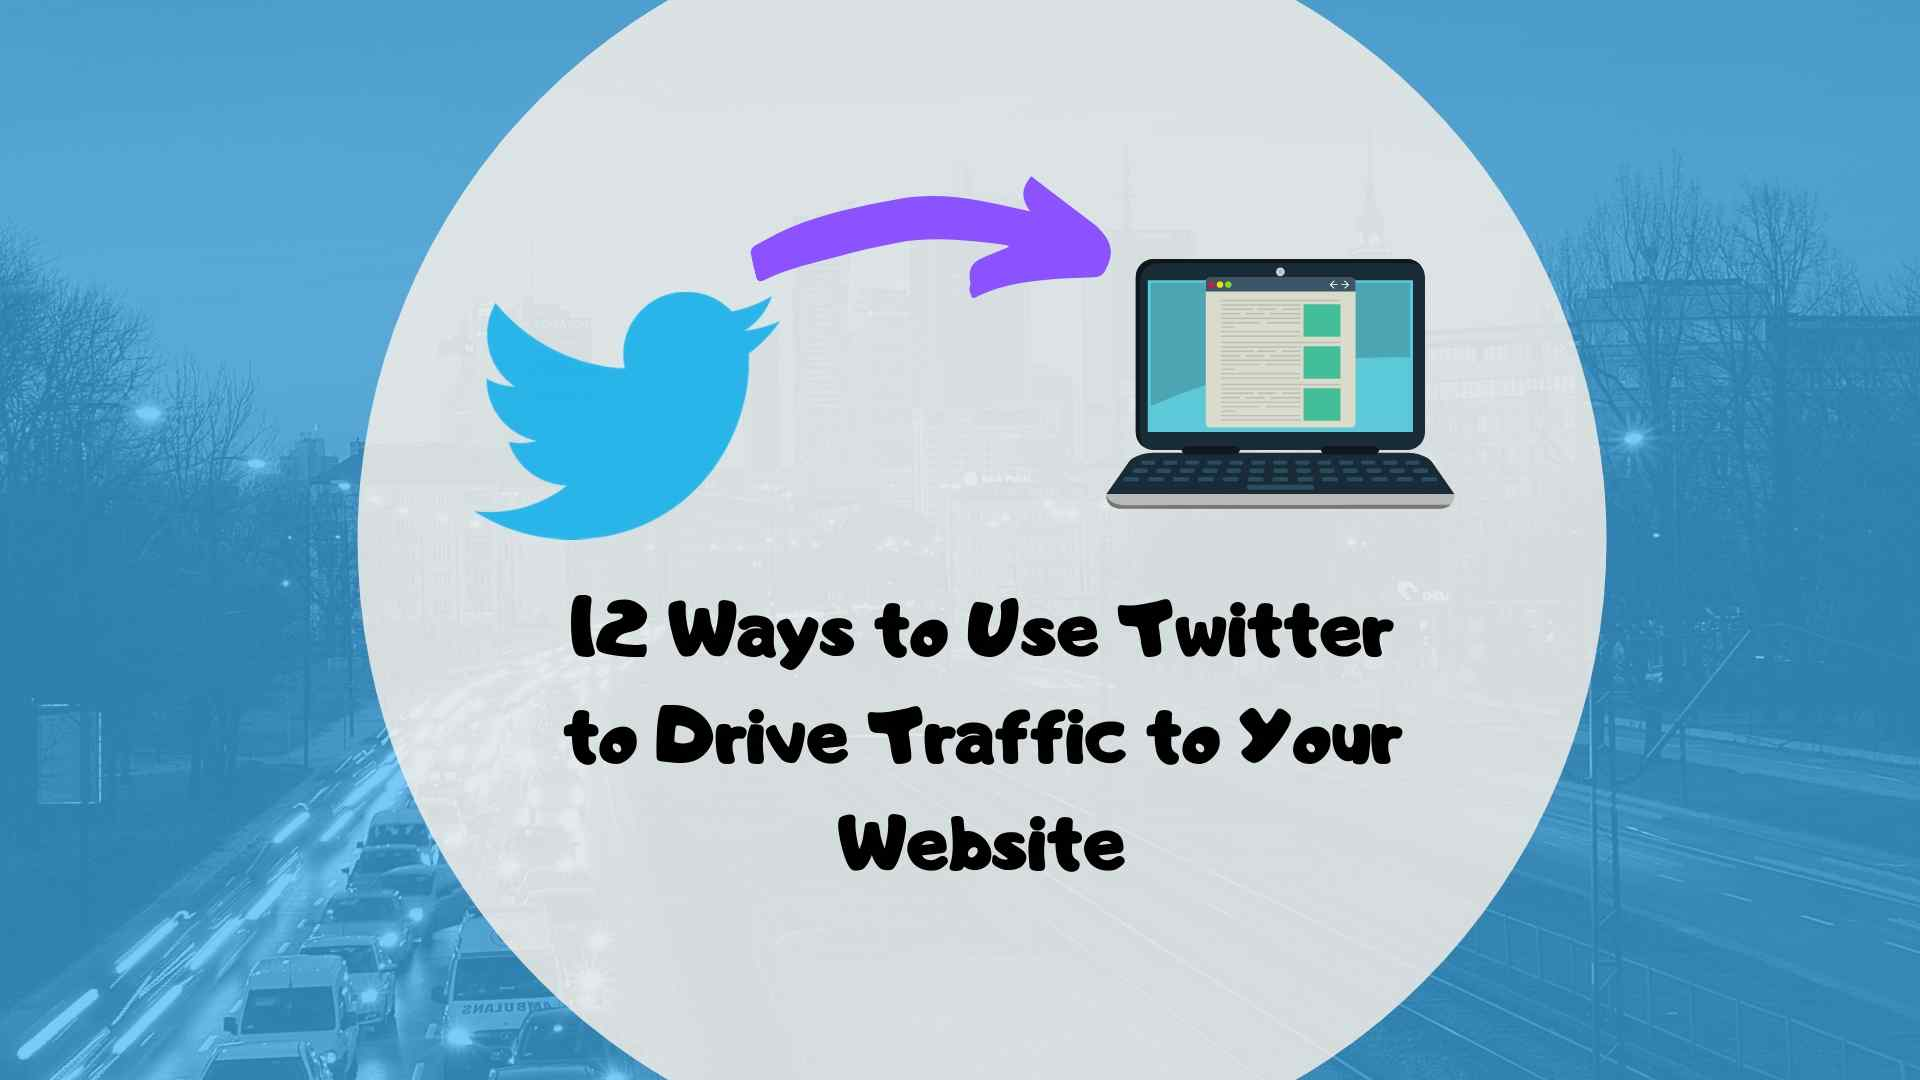 12 Ways to Use Twitter to Drive Traffic to Your Website